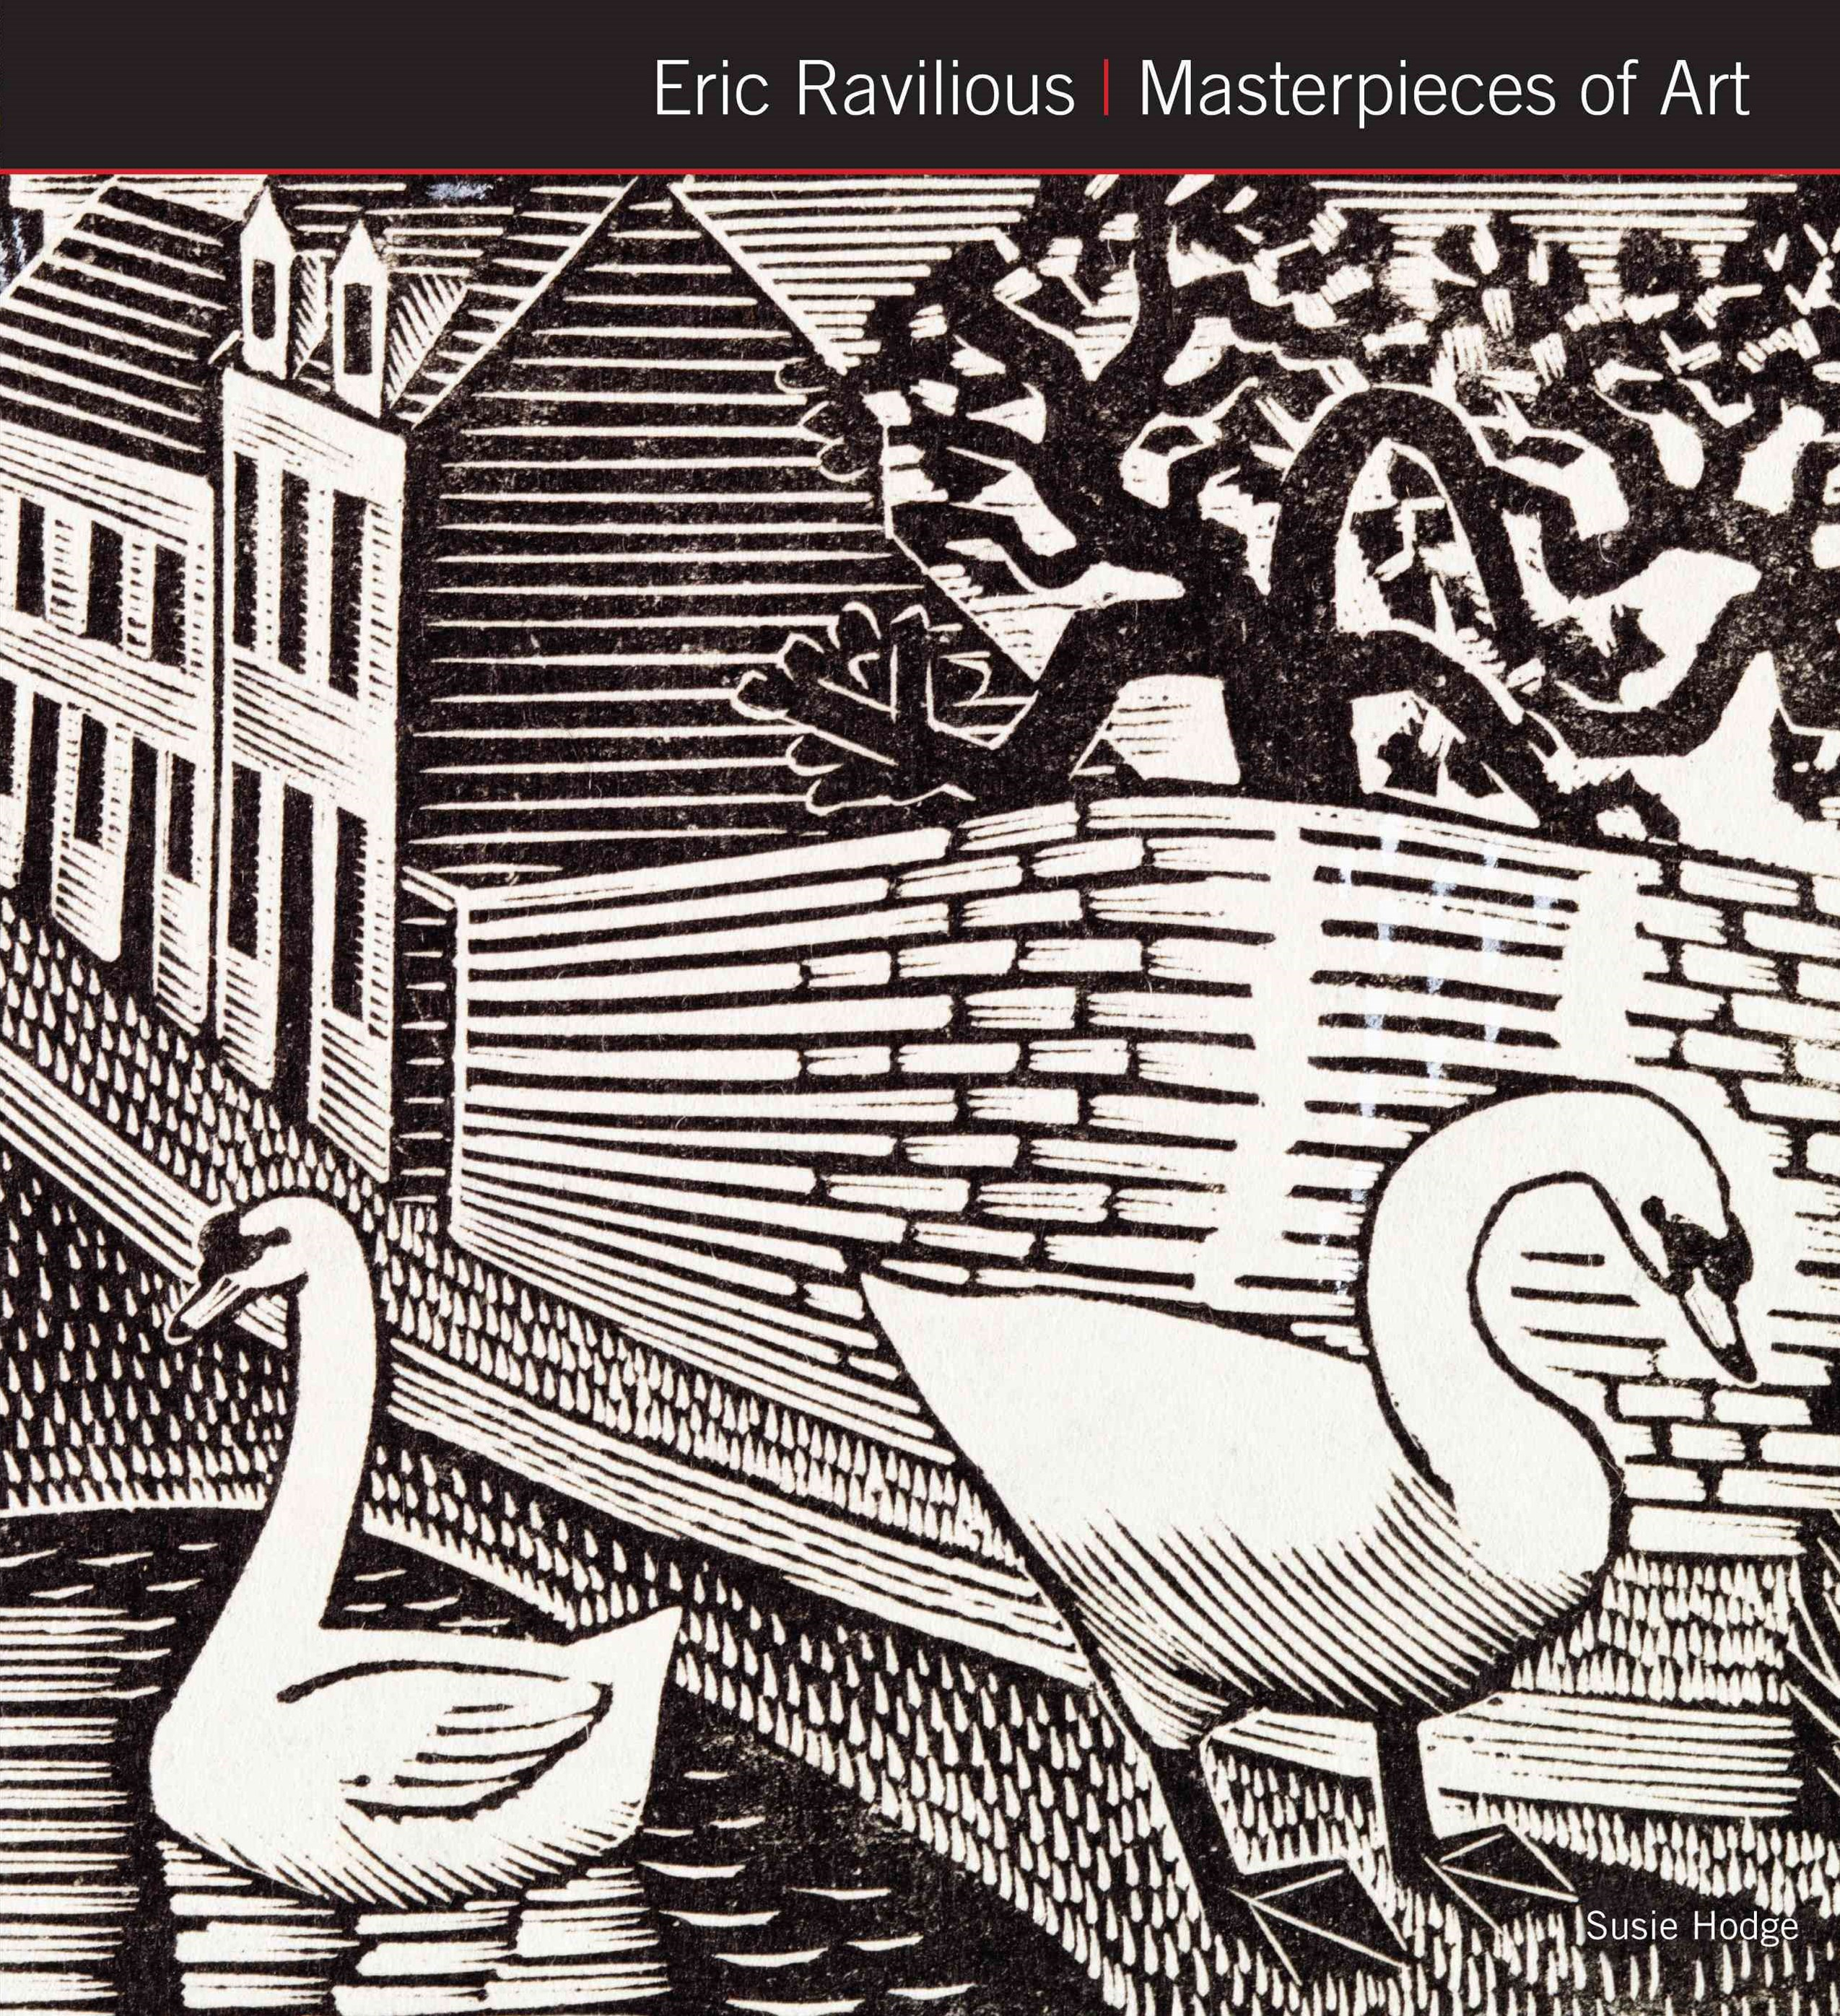 Eric Ravilious: Masterpieces of Art